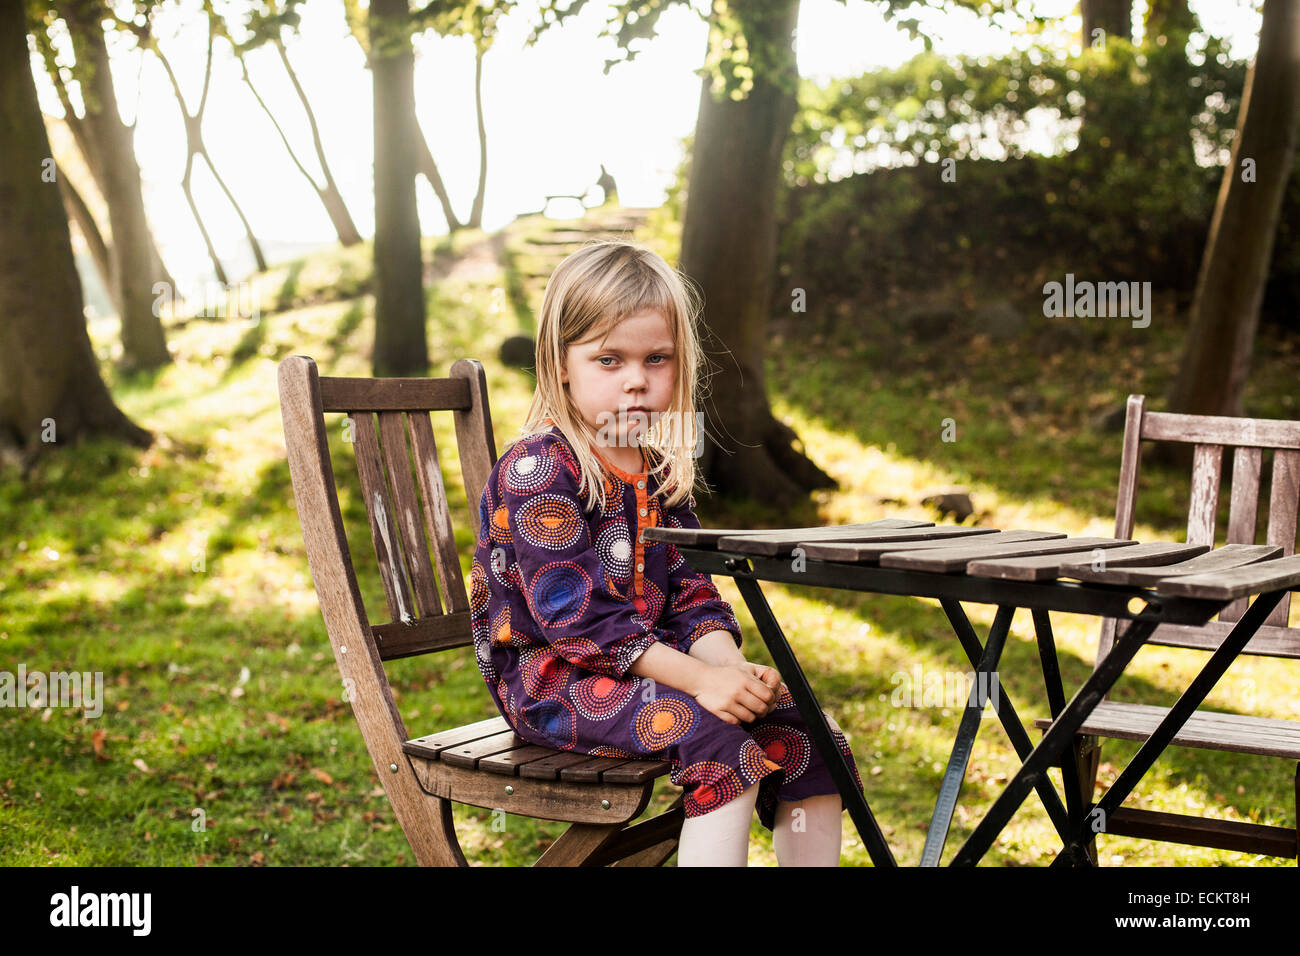 Sad girl sitting at wooden table in park - Stock Image